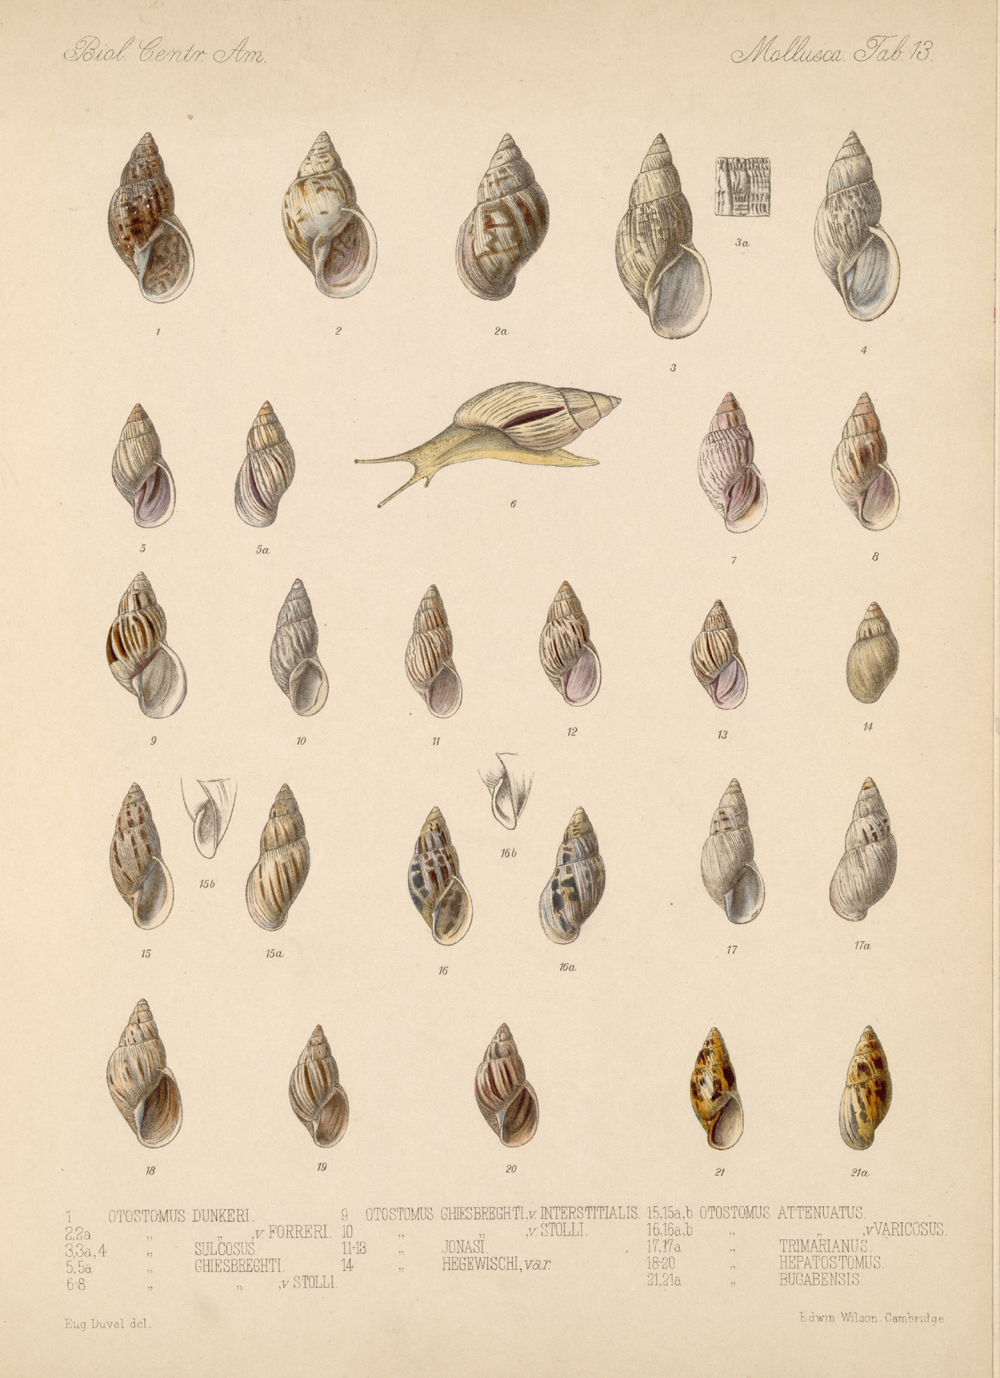 Shells and Mollusks,  Image number:bca_06_00_00_735